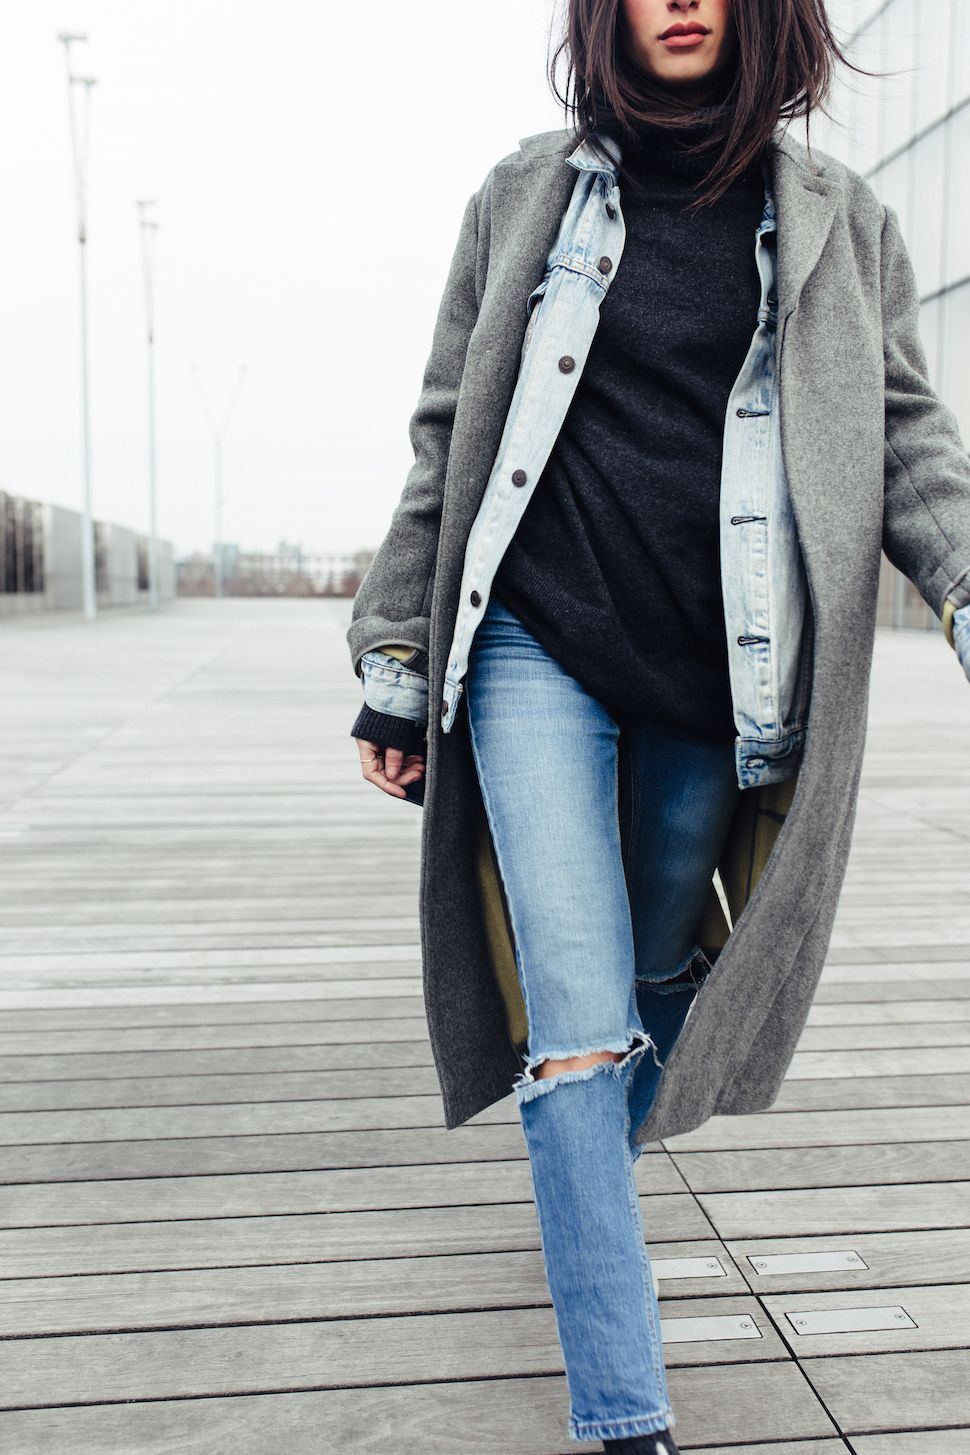 Buy Fashion Inspirationcollege street style roundup september pictures trends